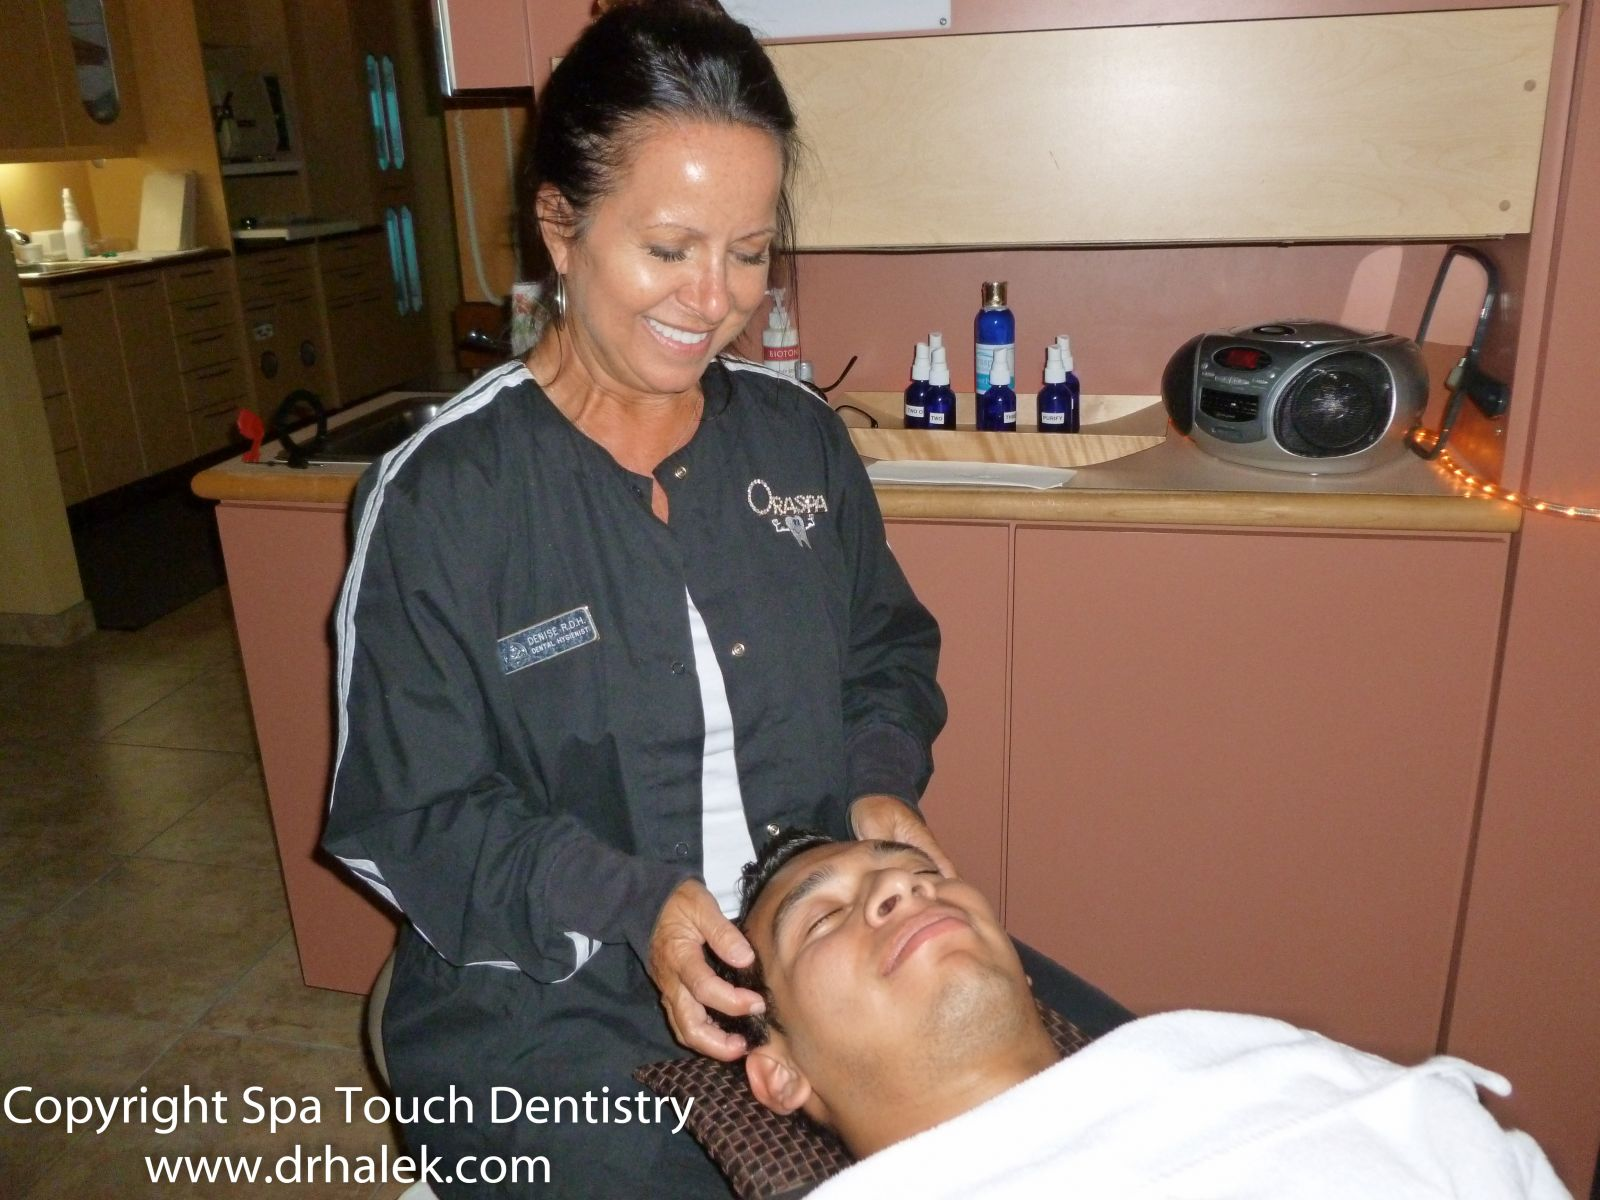 Spa Dentistry General And Cosmetic Dentist